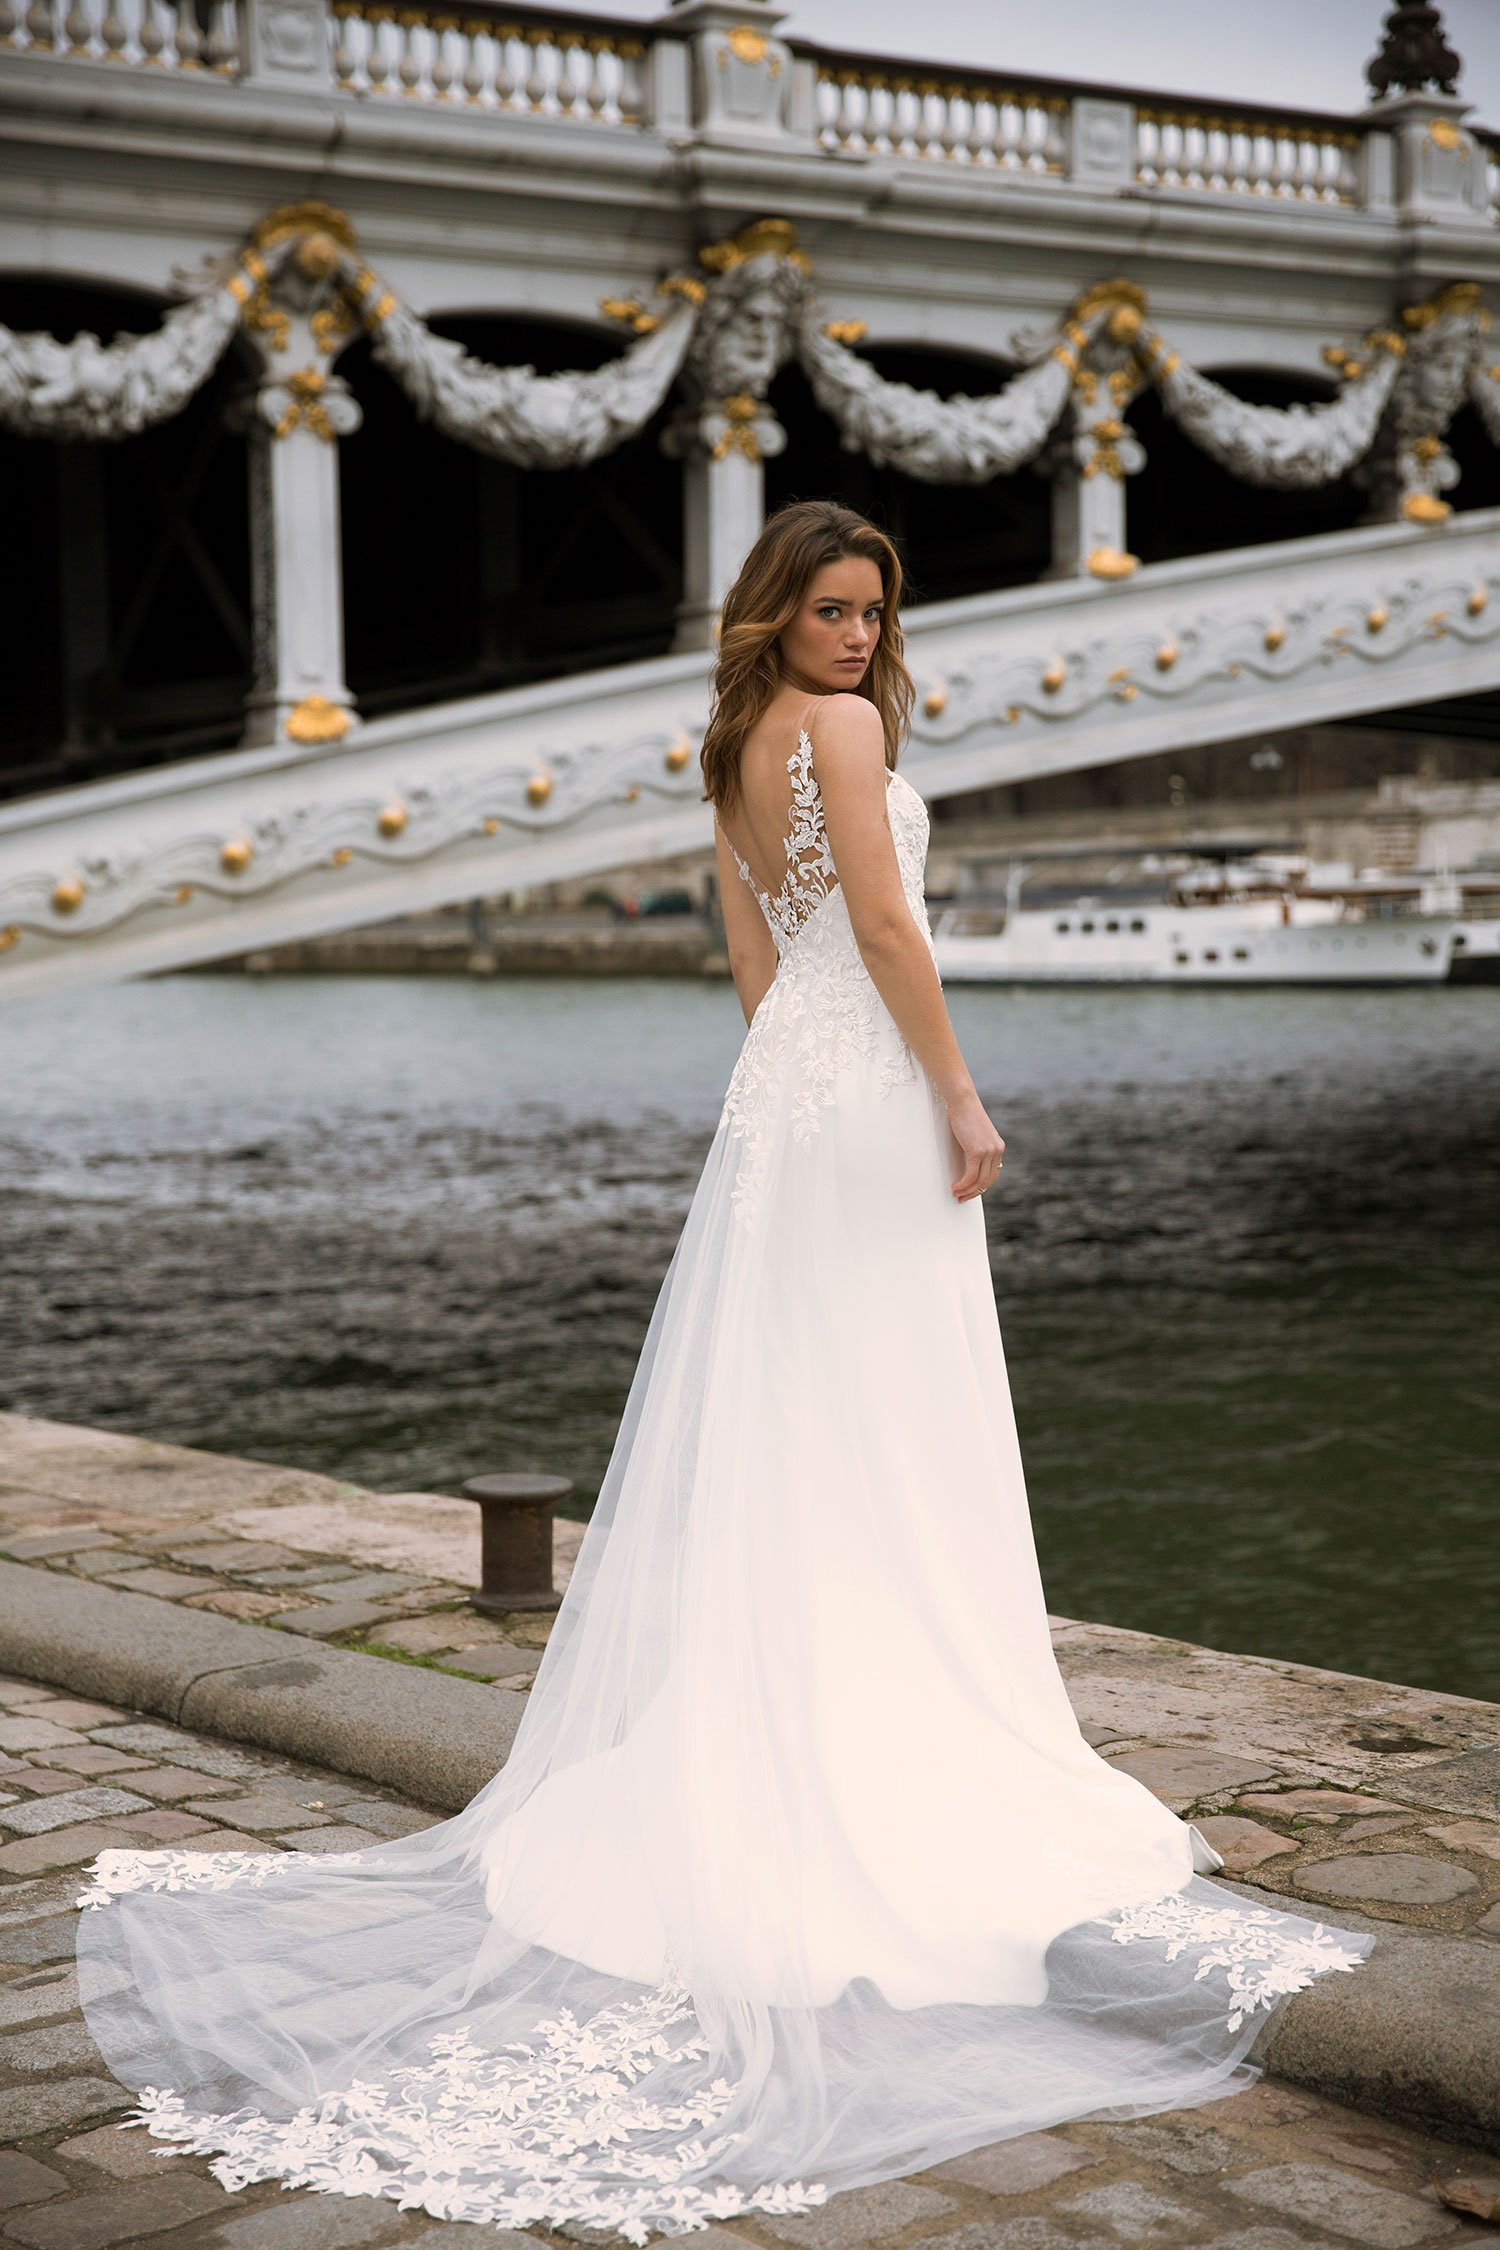 FERNE-ML0435-V-NECKLINE-FRONT-AND-BACK-FITTED-CREPE-GOWN-WITH-BEADED-SECTIONS-AND-SHOULDER-BEAD-TASSLES-WEDDING-DRESS-MADI-LANE-BRIDAL5